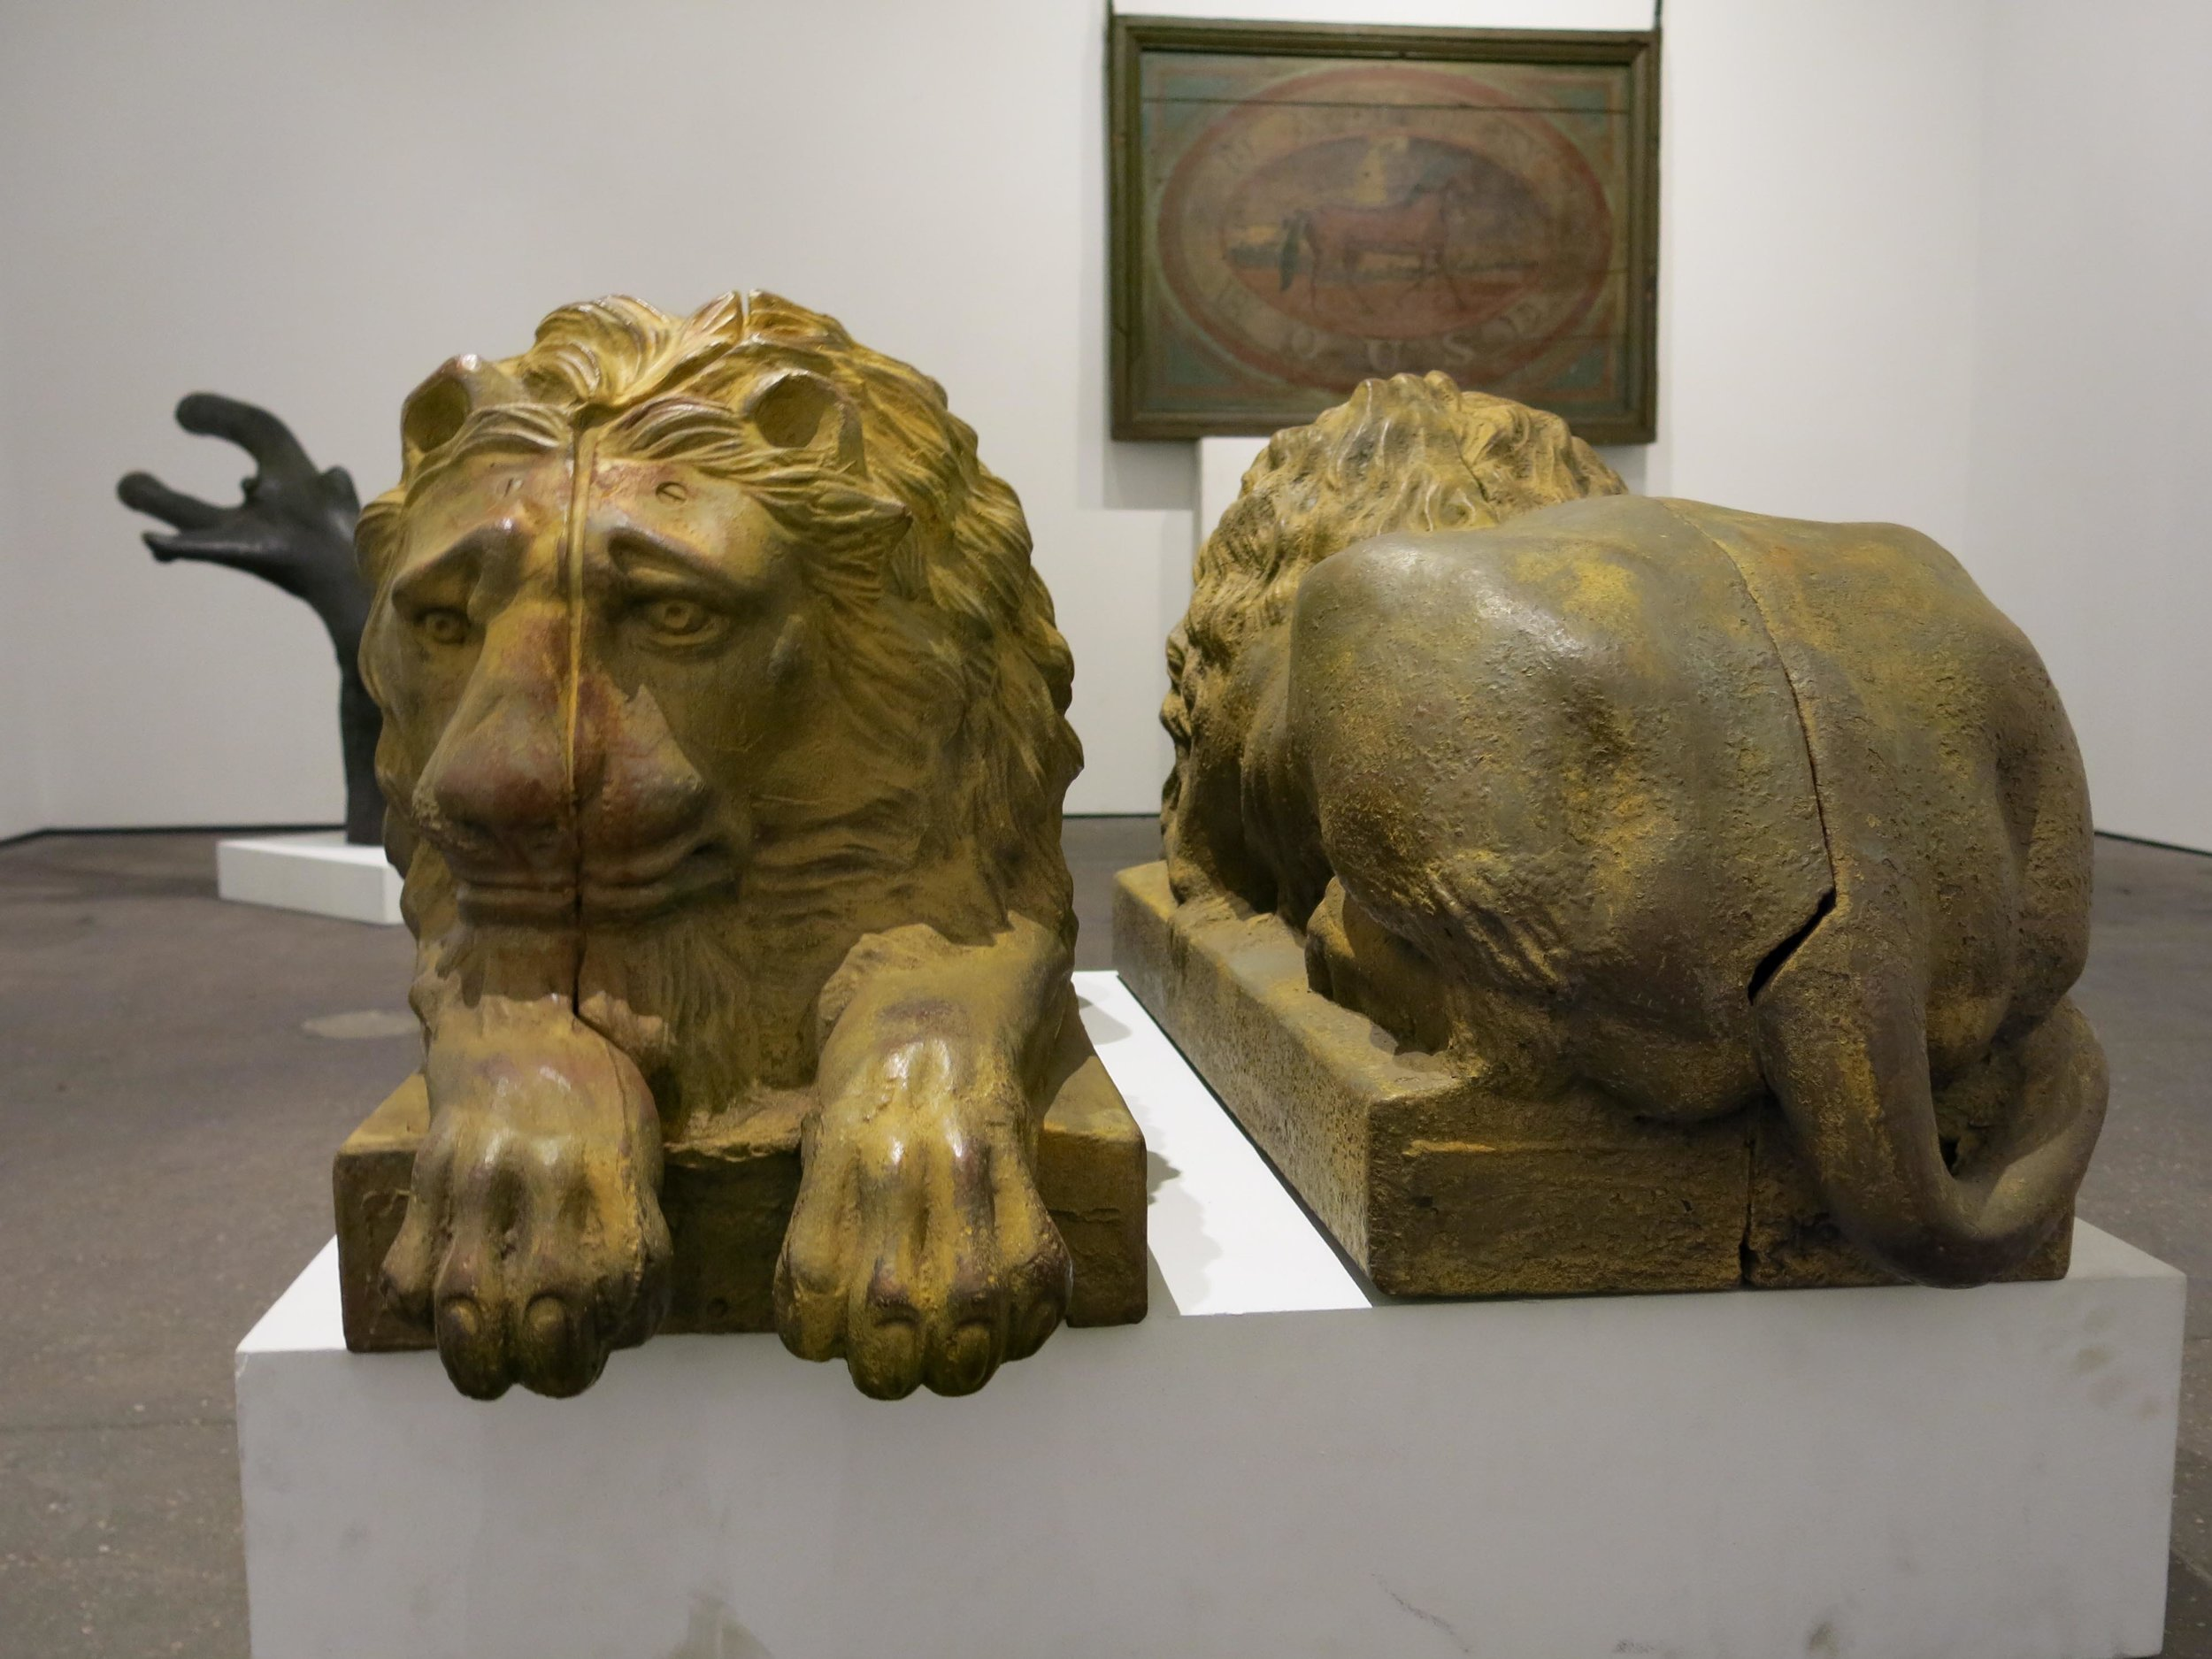 Attributed to J. W. Fiske, New York, Pair of Cast Iron Lions, circa 1880, cast iron with old yellow paint, 36h x 20w x 20d in. (ea.)